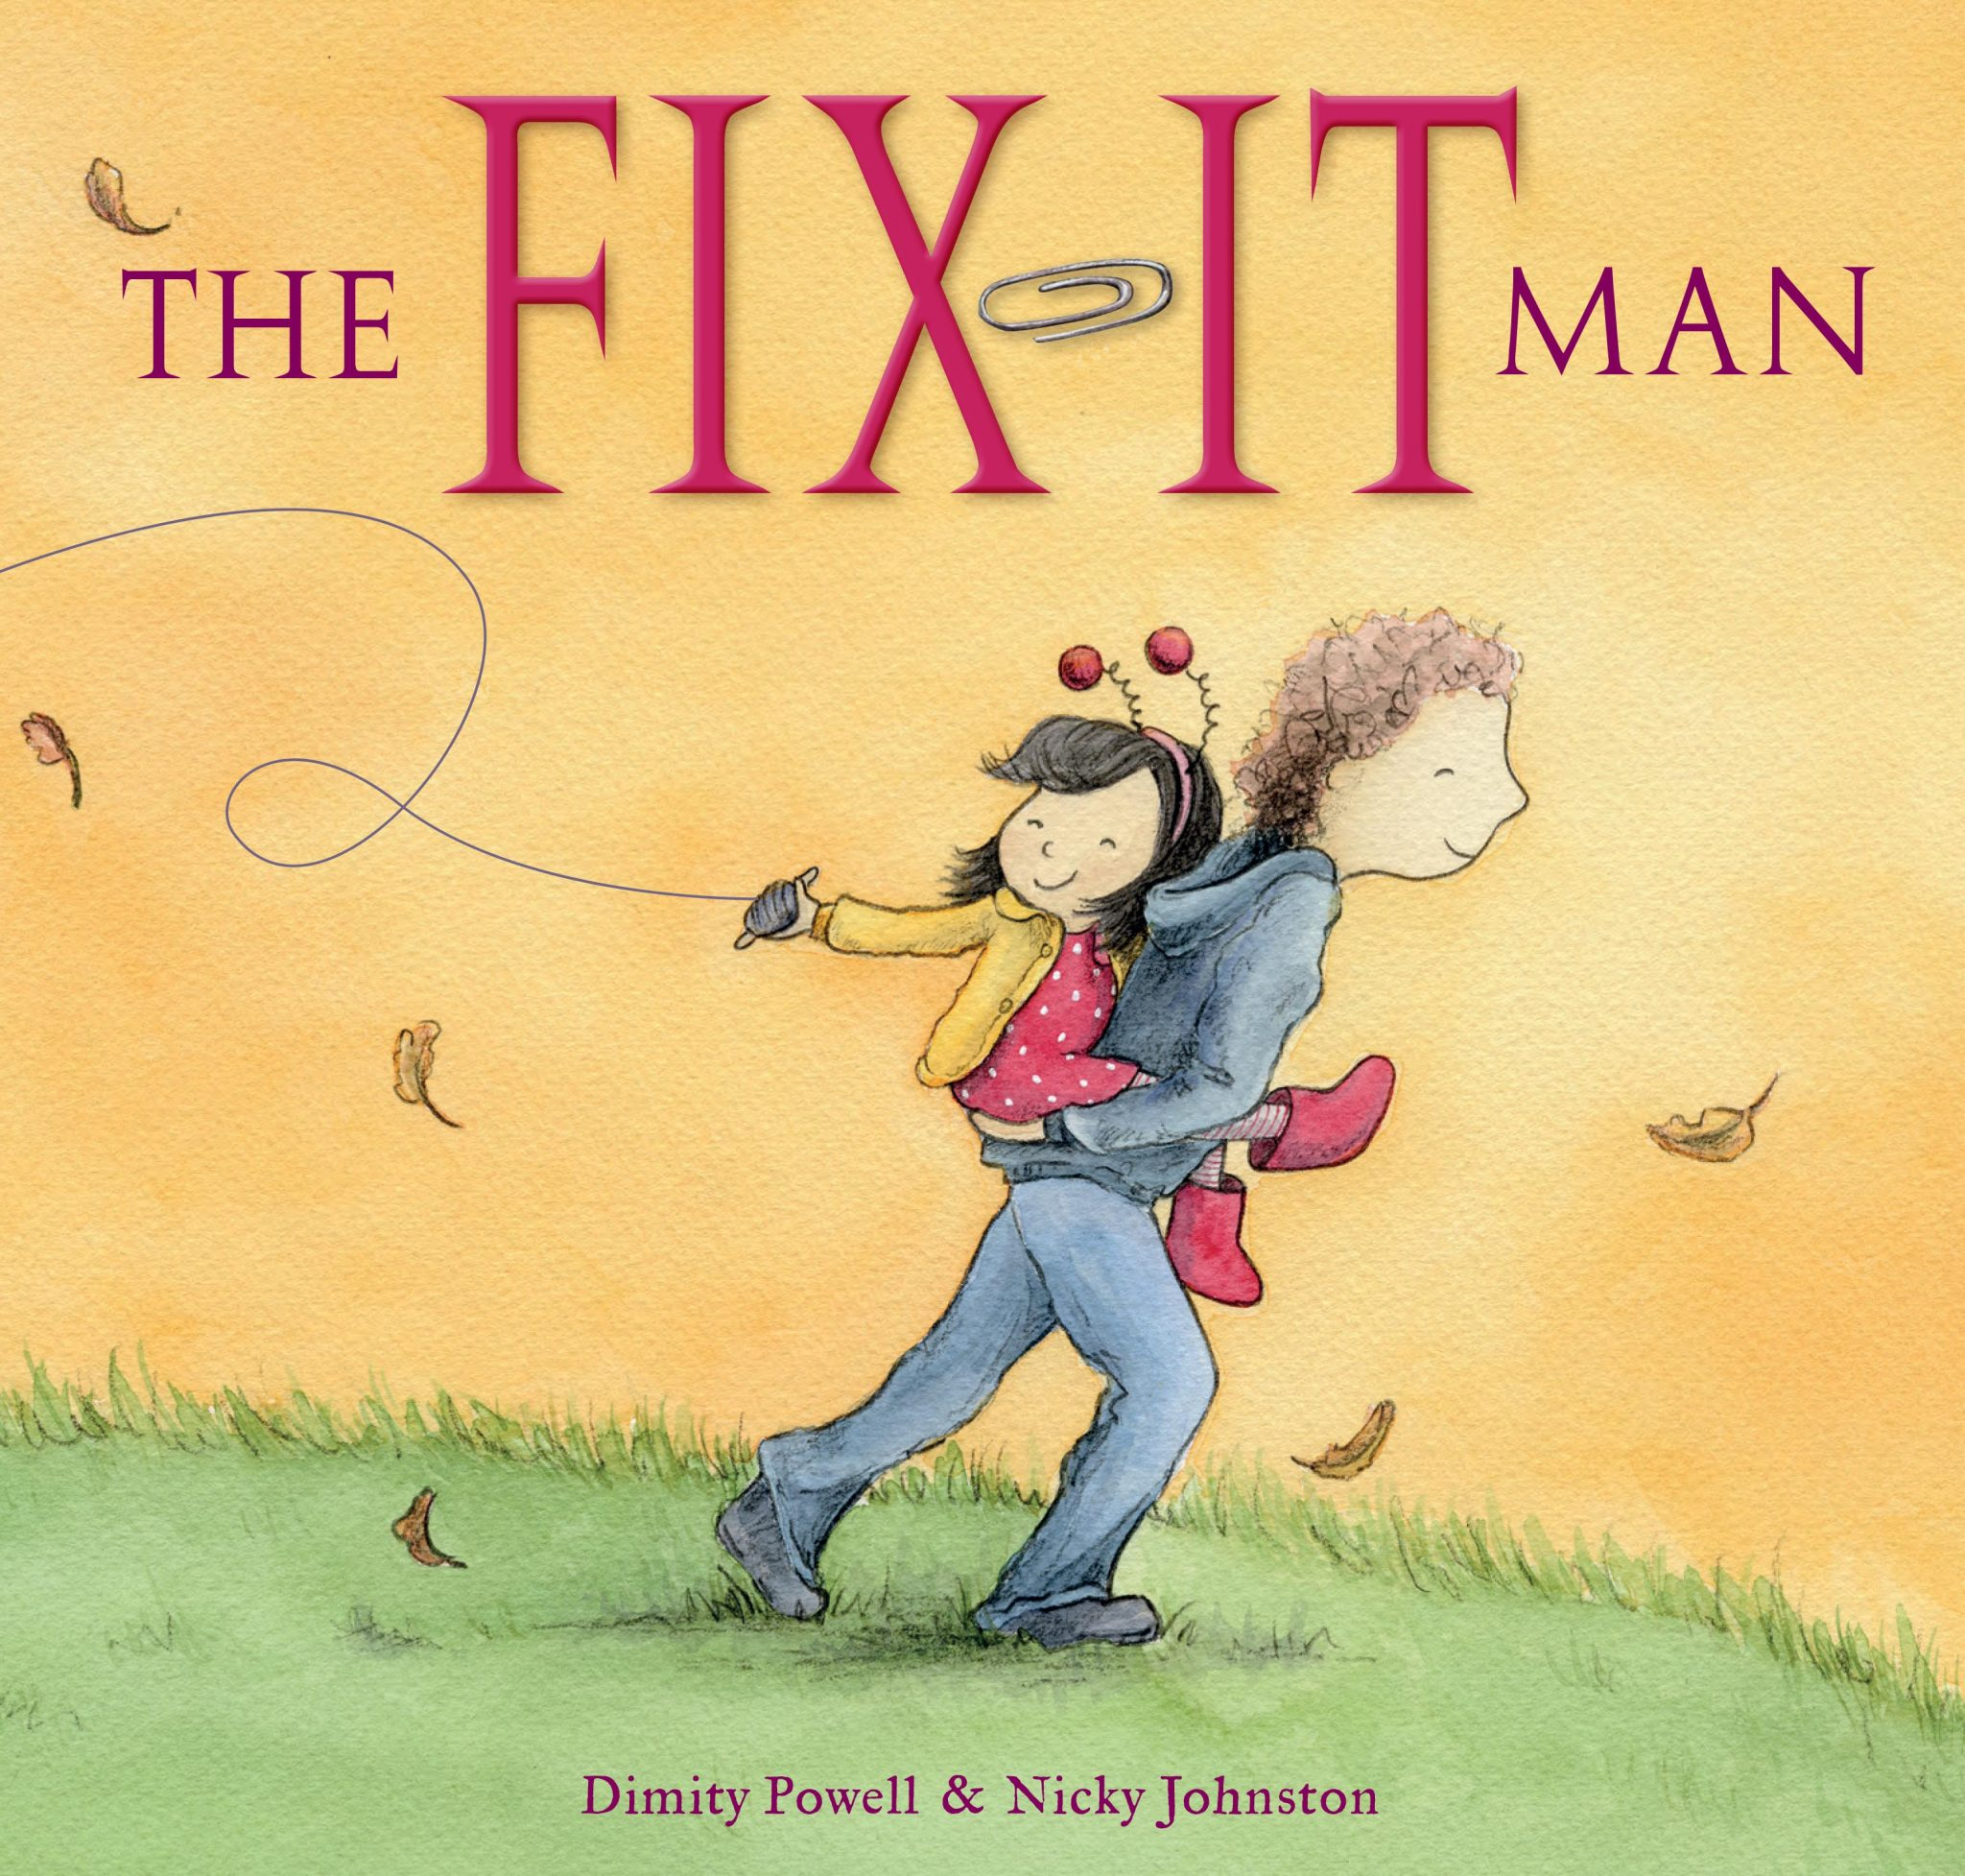 The Fixit Man - Nicky Johnston